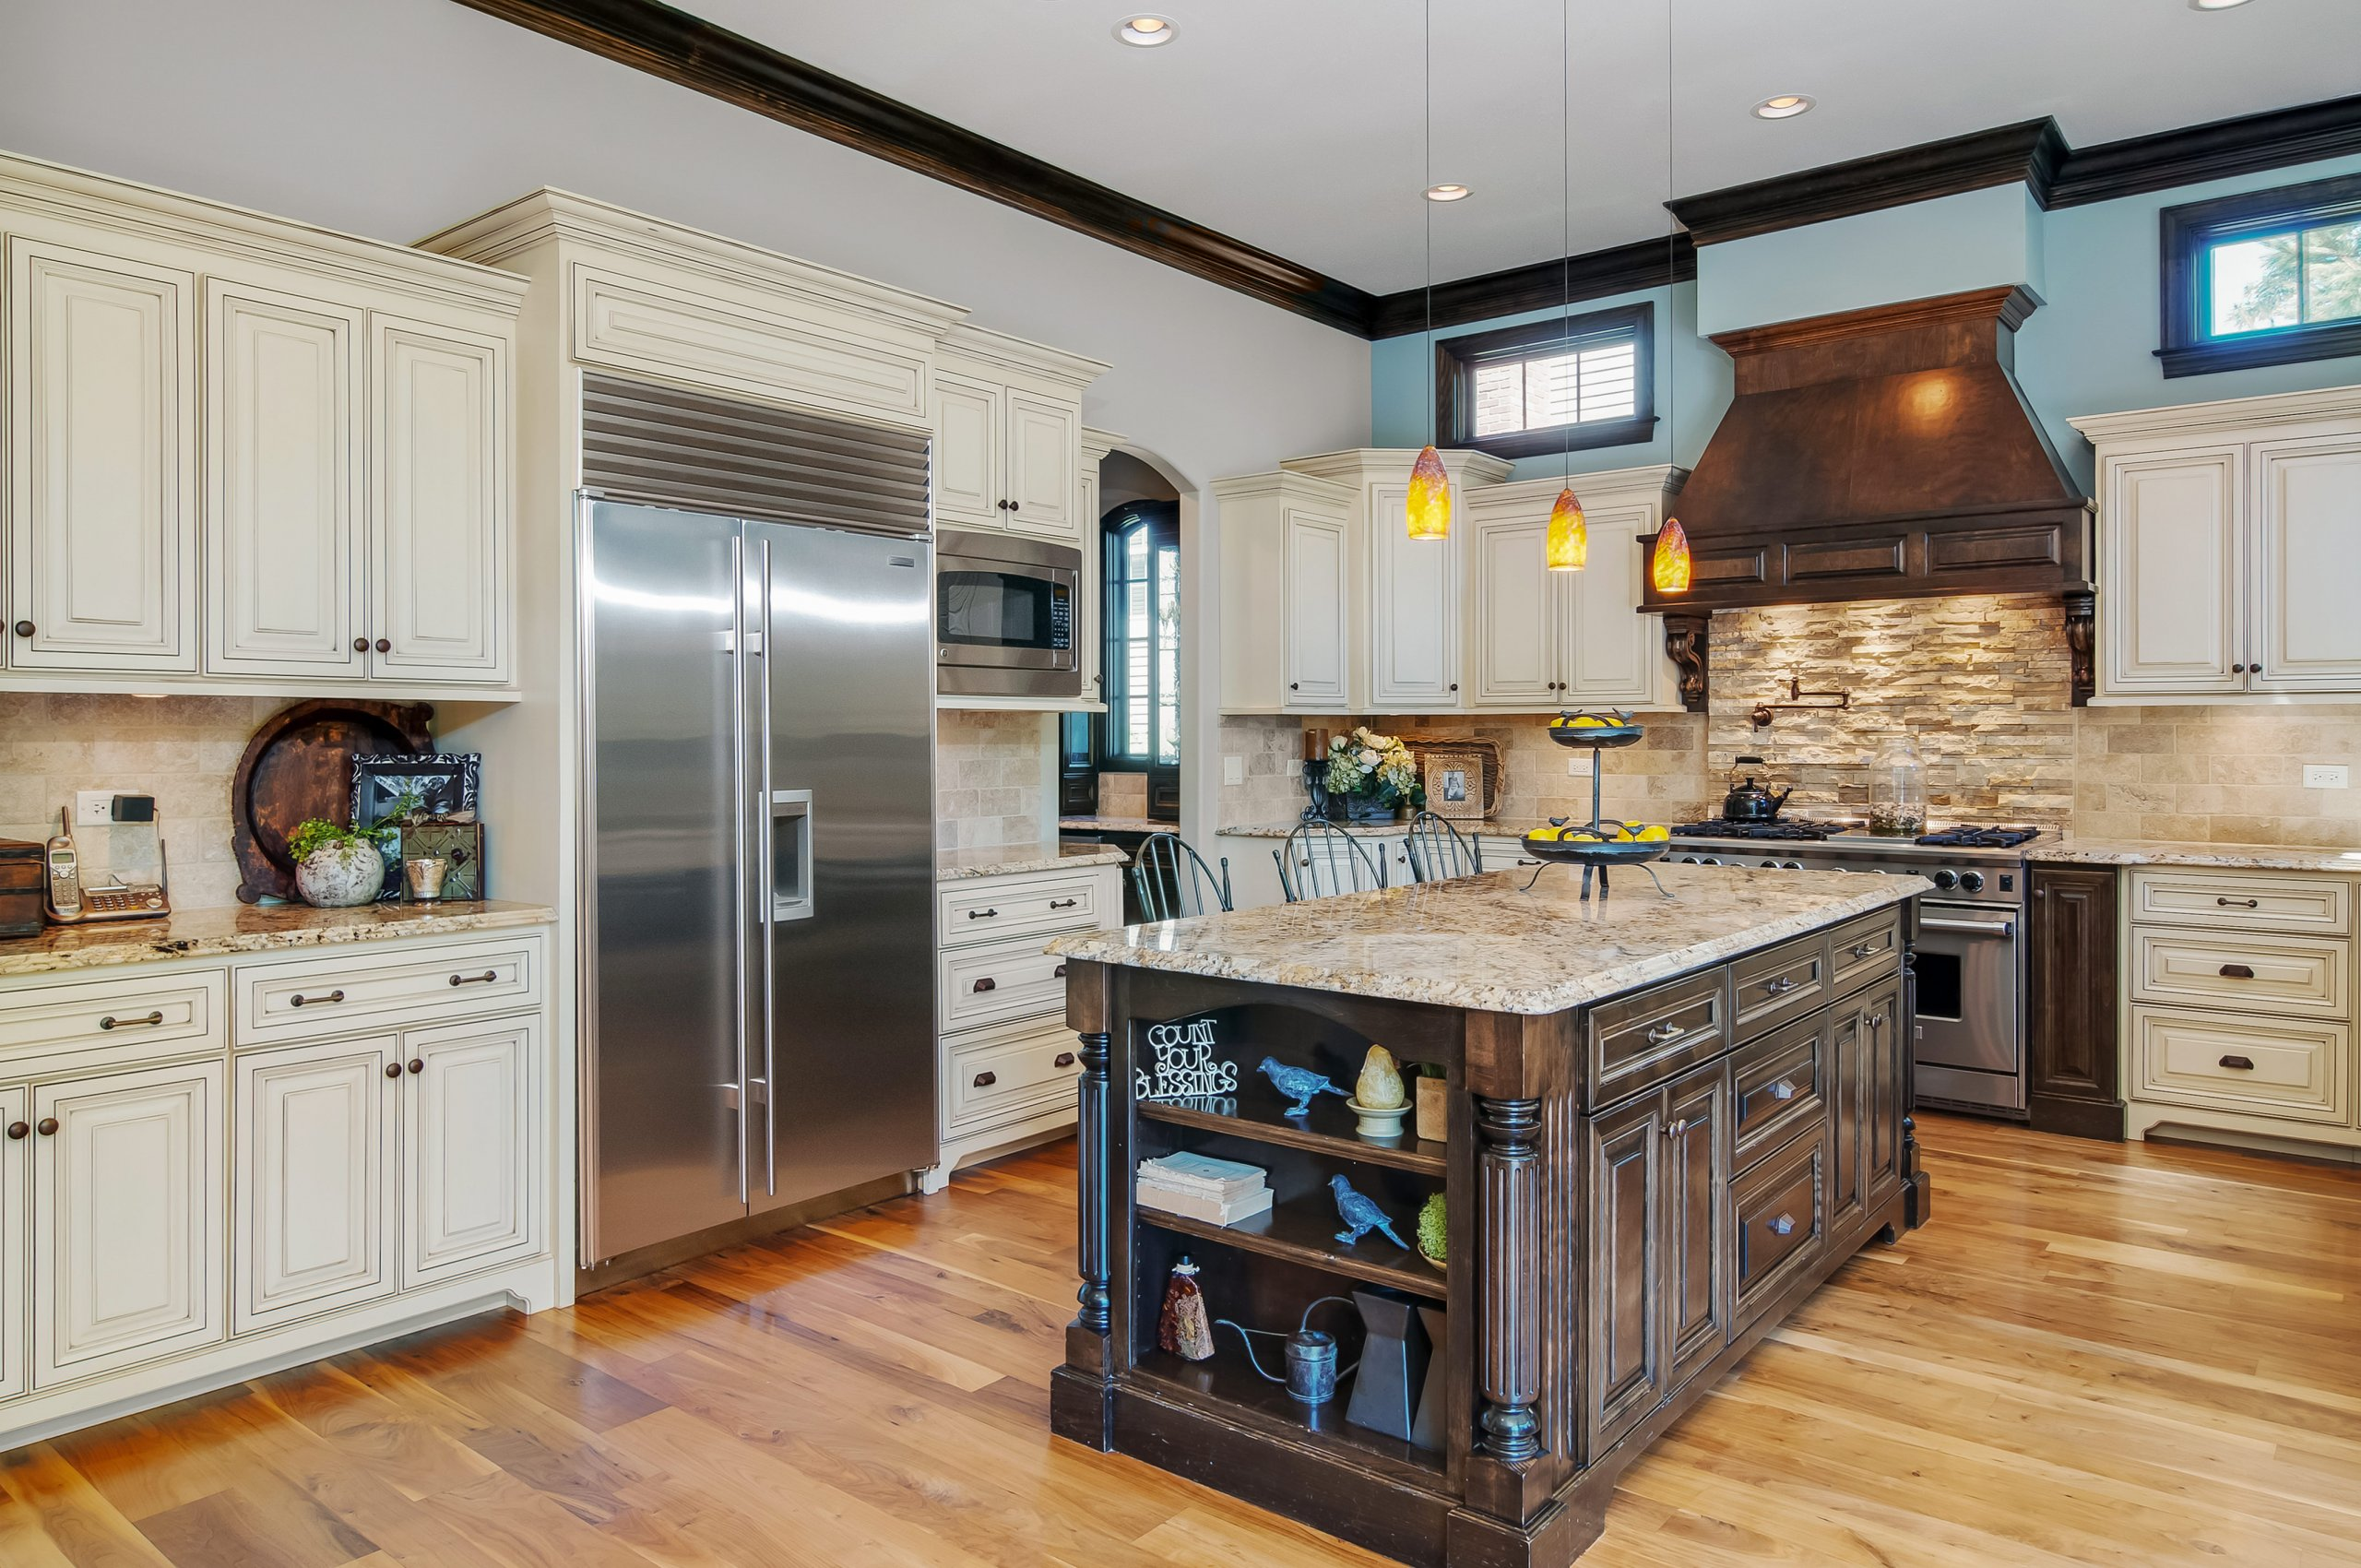 Spacious Naperville, Illinois kitchen interior photograph with high end cabinetry.